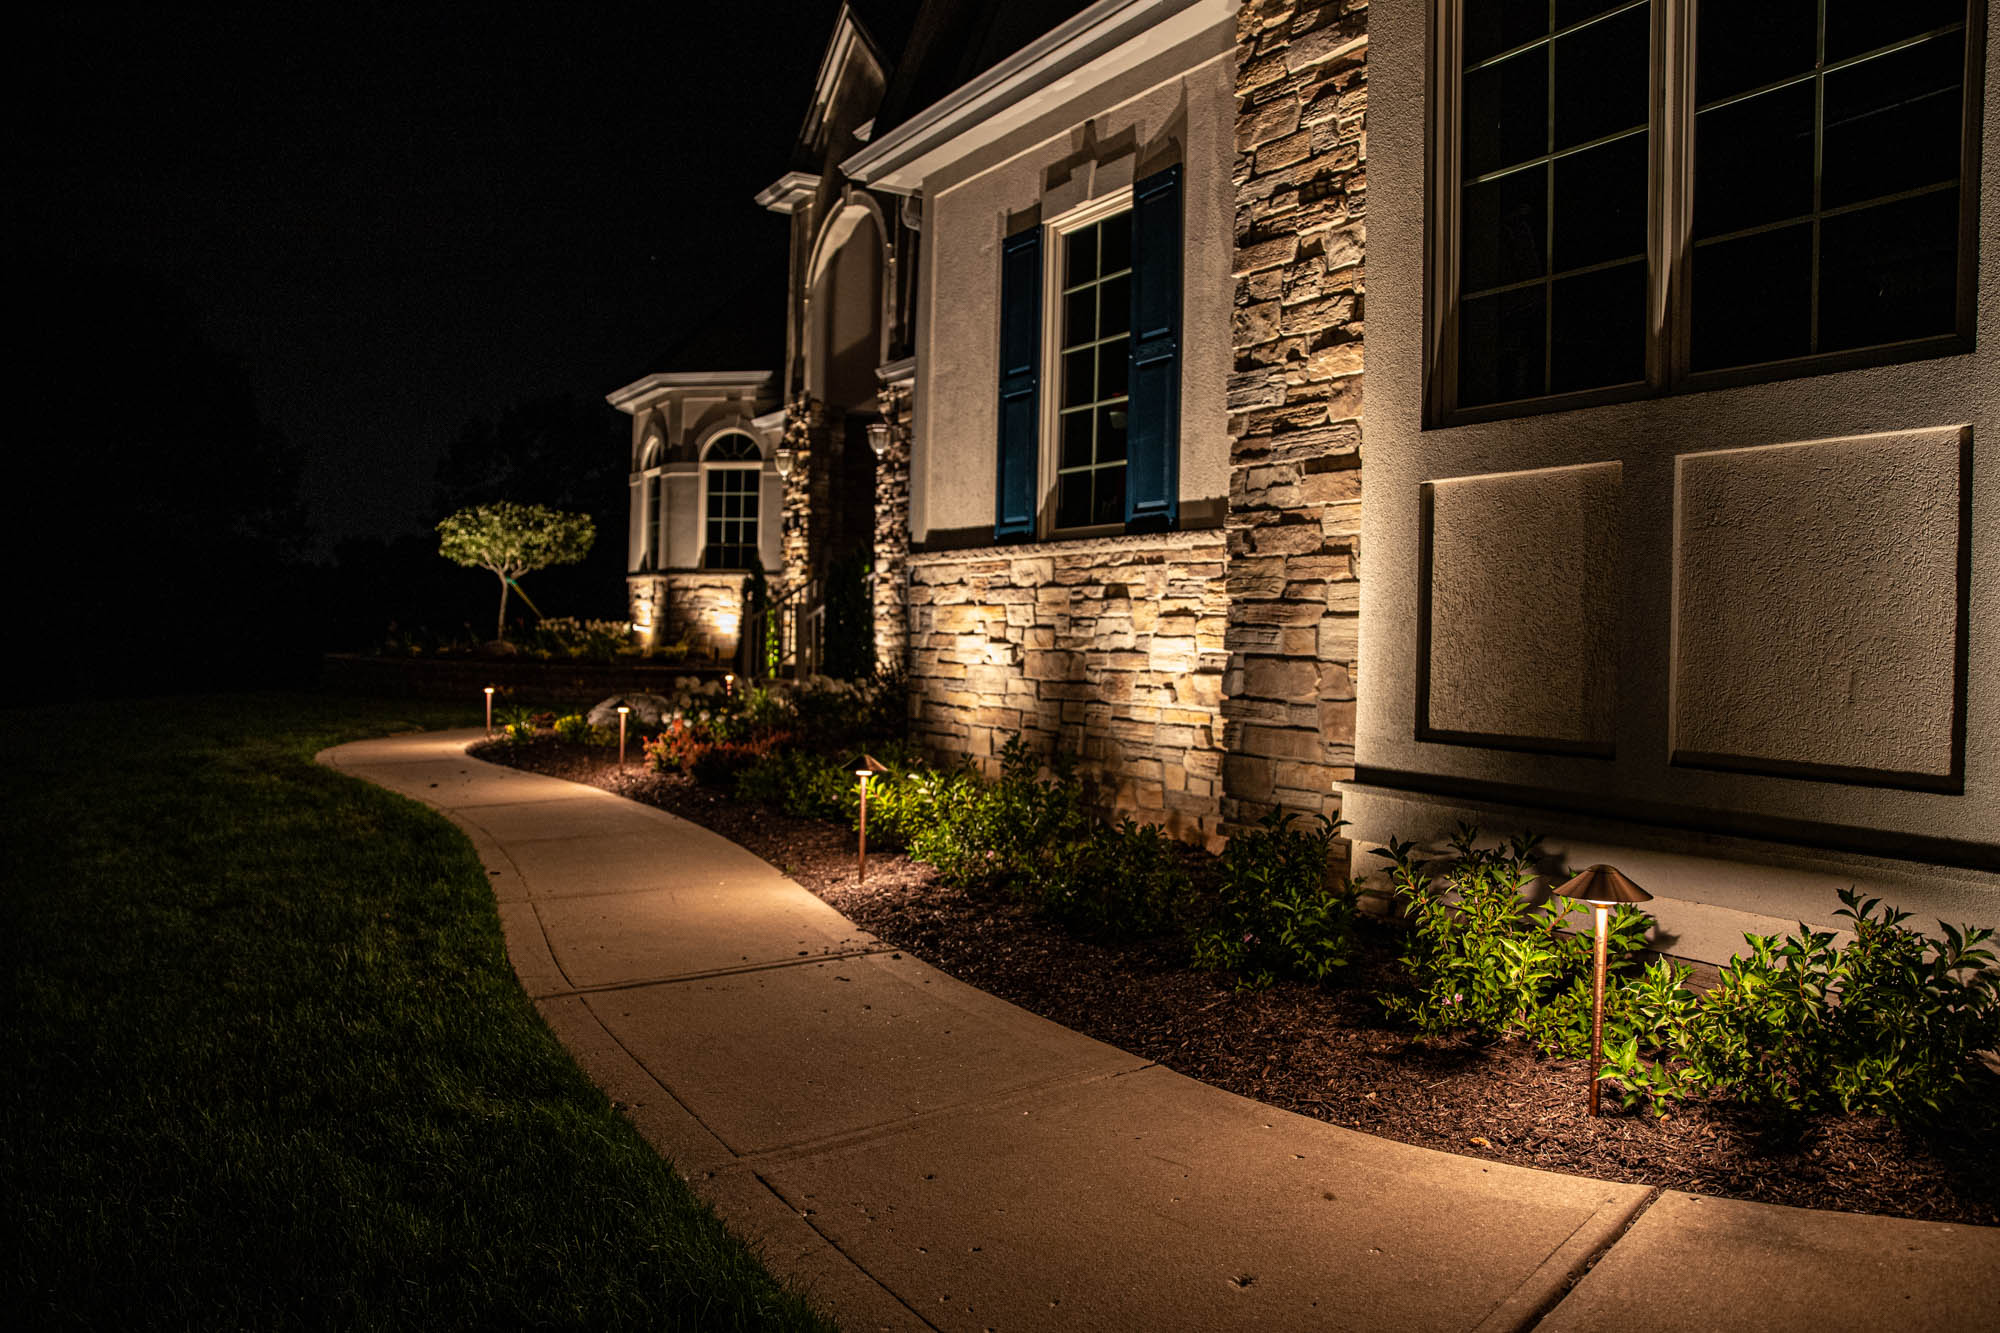 mukwonago landscape outdoor lighting night owl path lights and home entrance security lighting plants